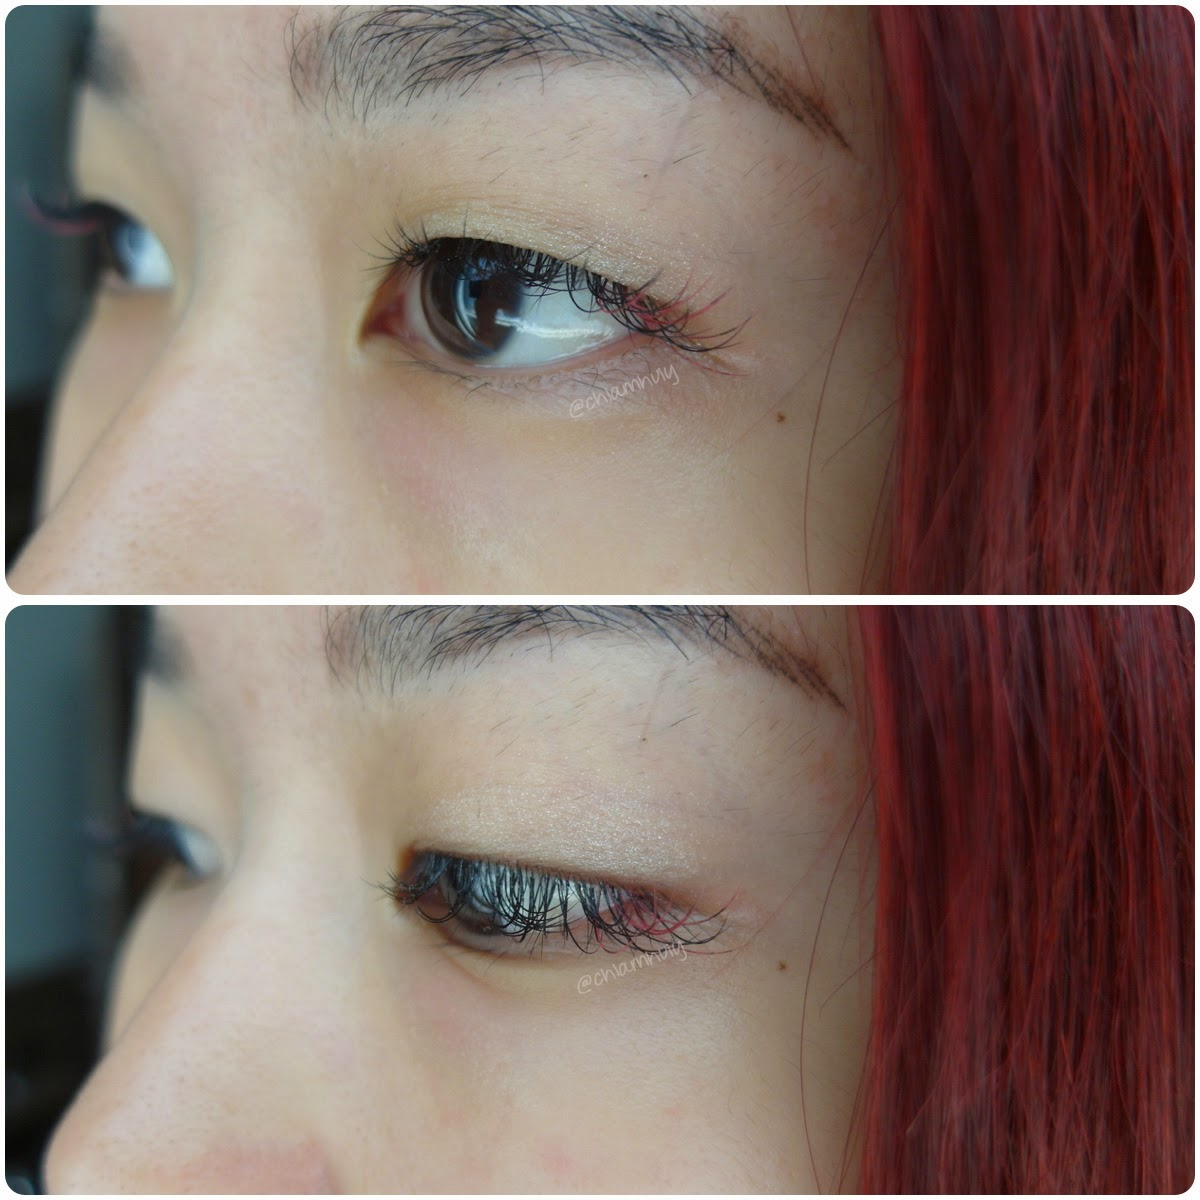 New Pair Of Eyelash Extension This Time Round I Have All C Curls Of Mm And A Few Strands Of Pink To Add Some Fun To It